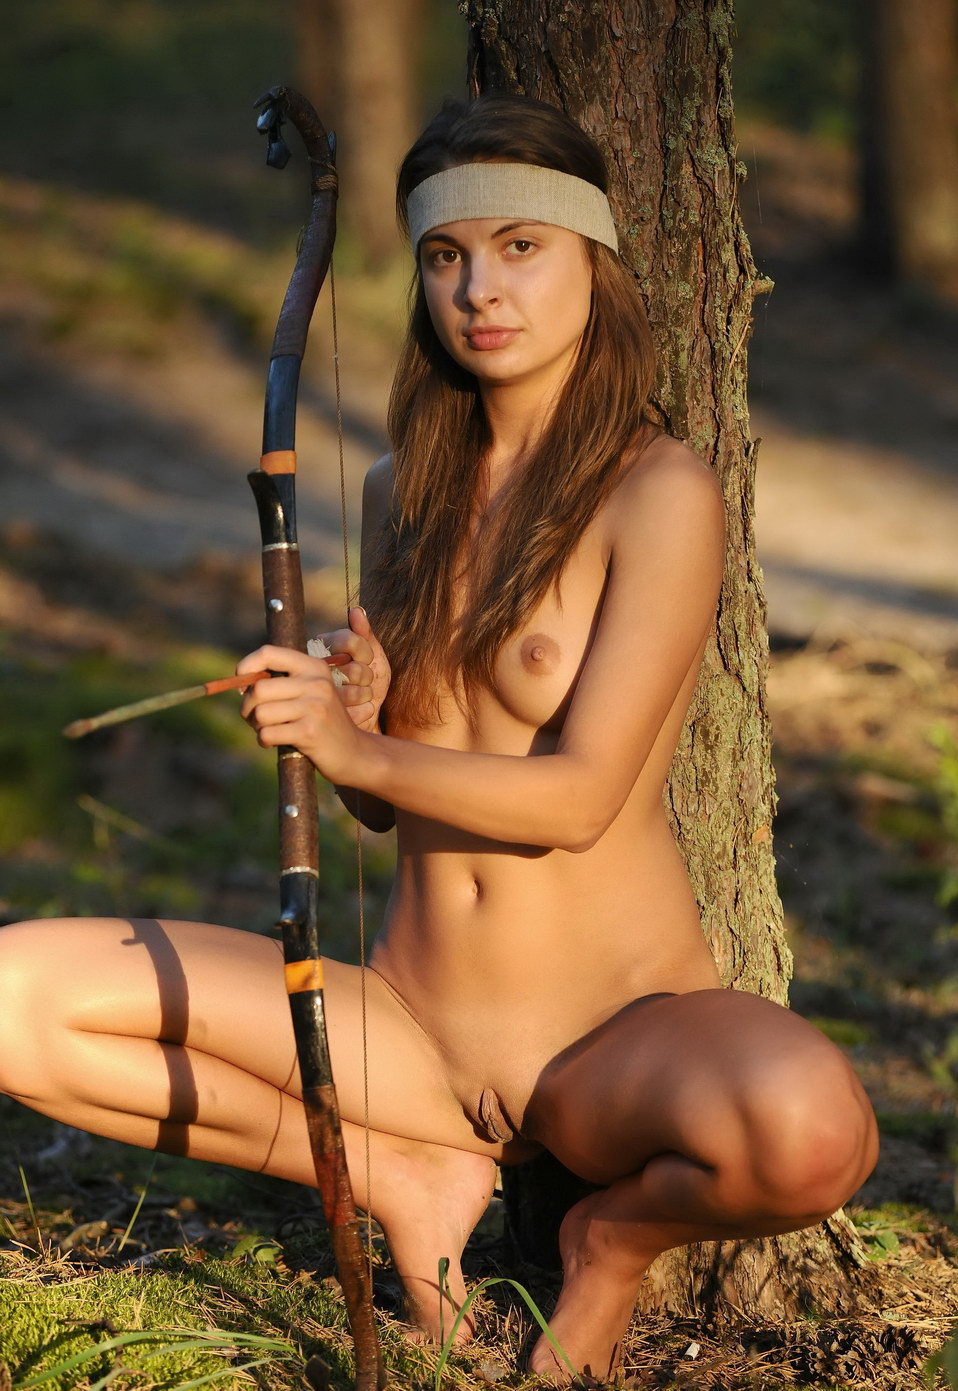 Female archers naked hentay gallery